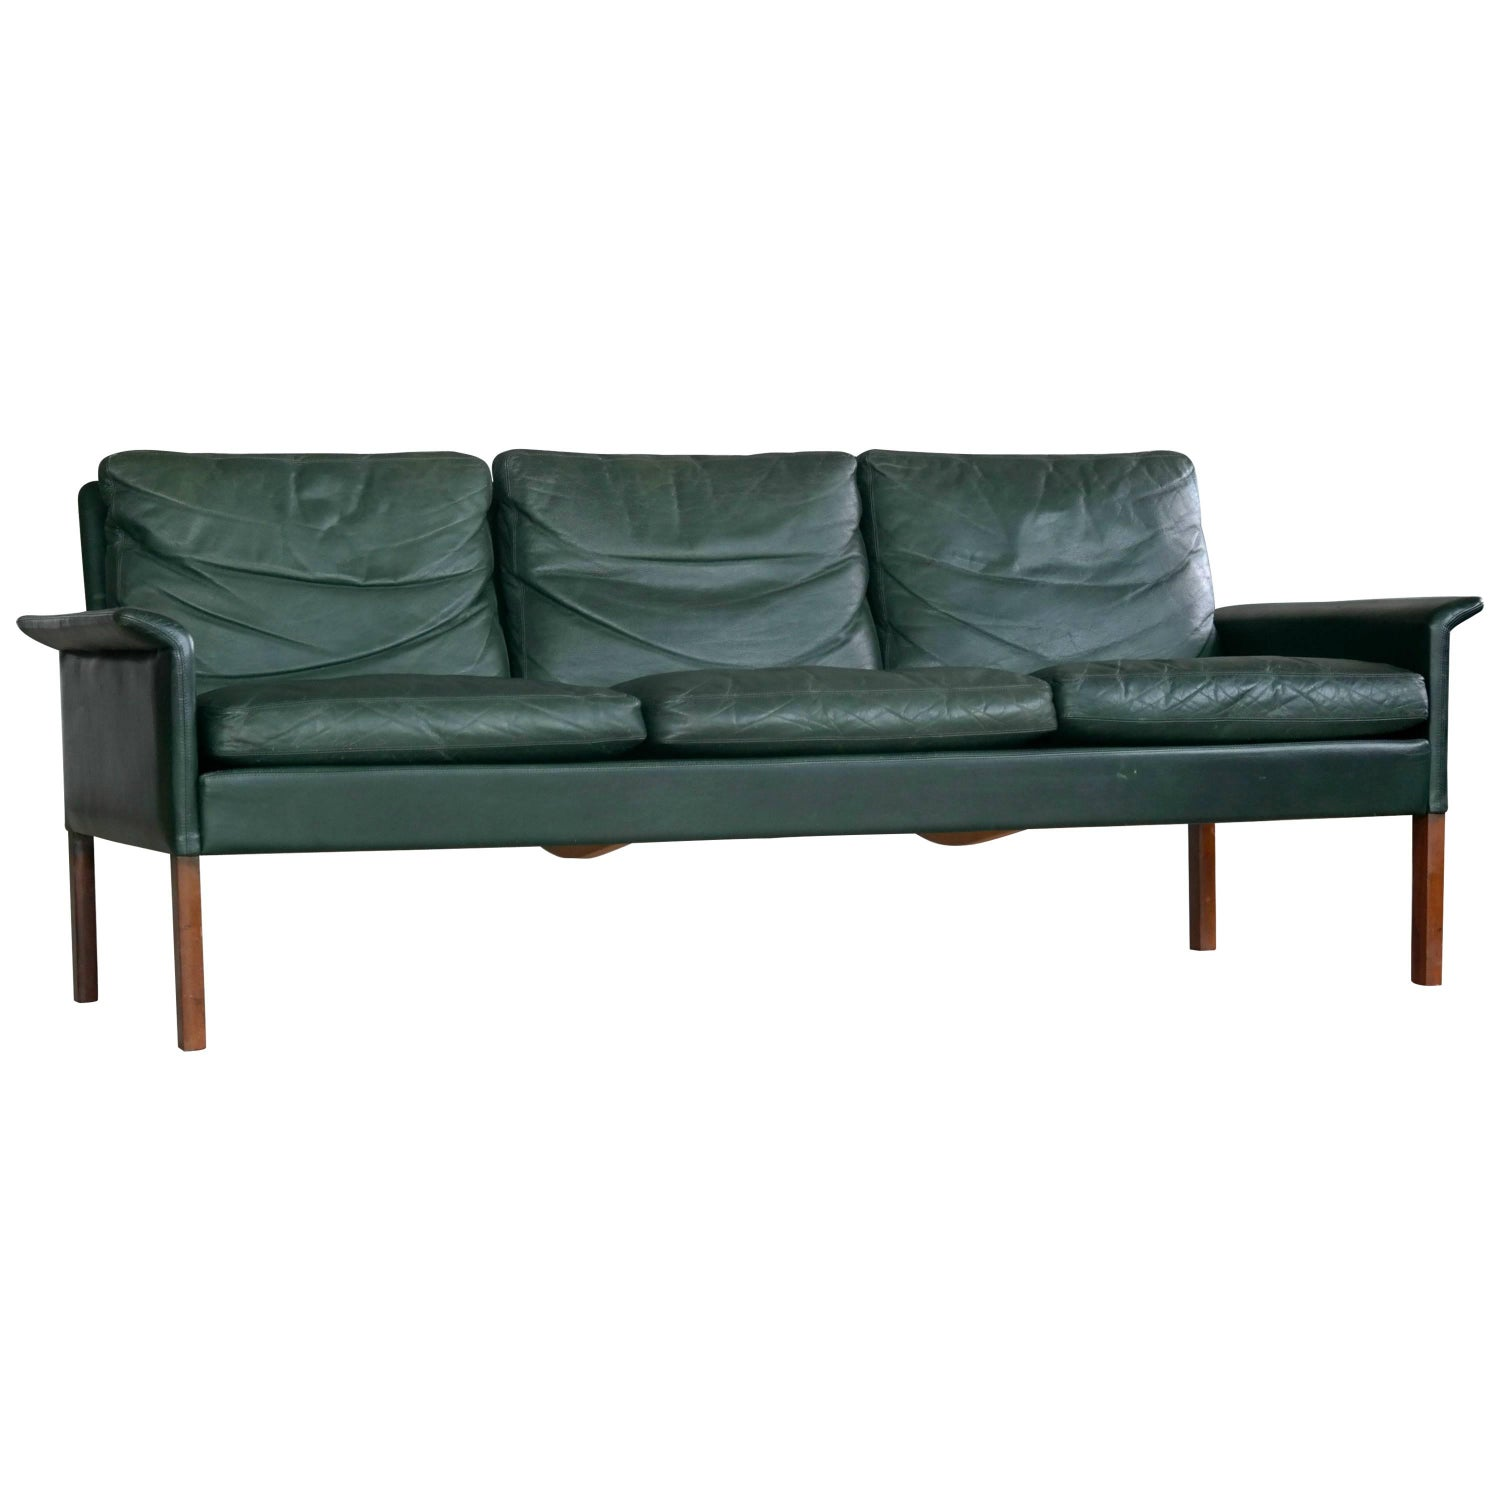 Stunning 1960s Grass Green Leather Sofa at 1stdibs